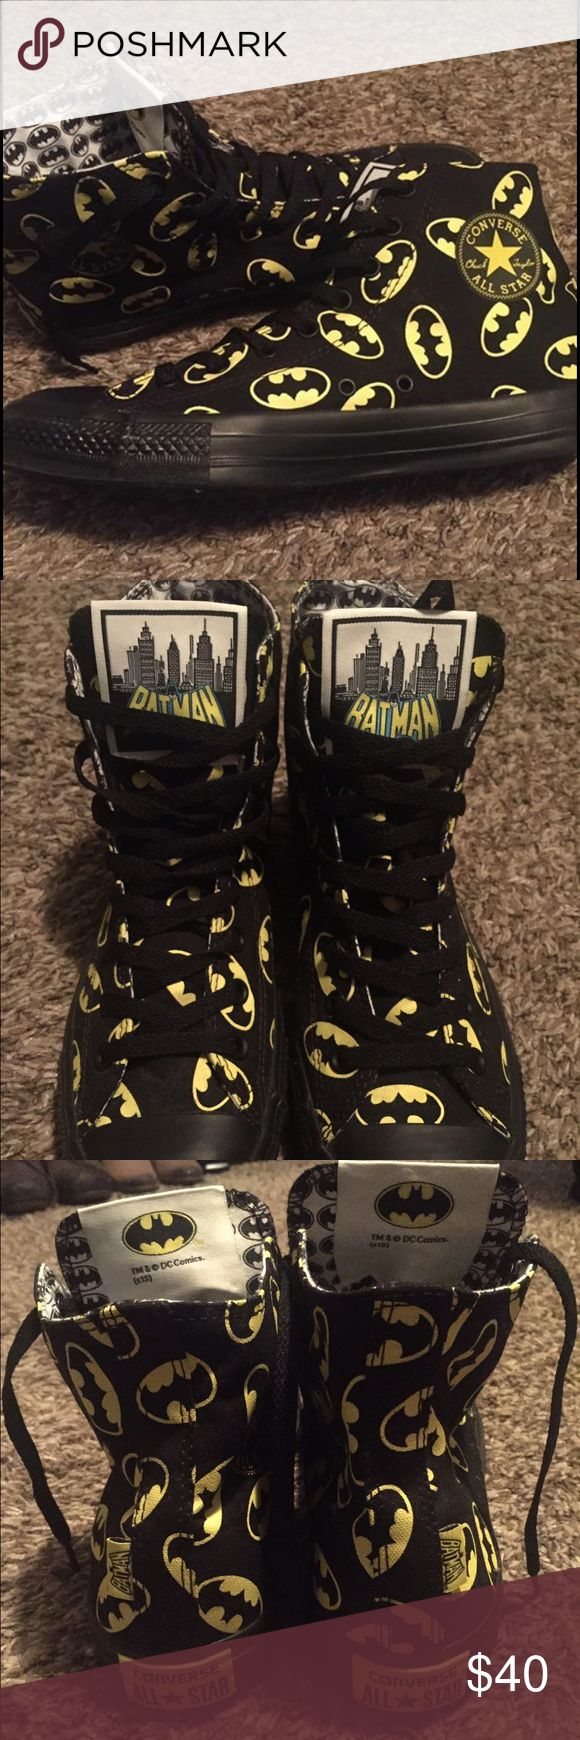 🆕 Unisex Batman converse 💛🖤 Unisex Batman converse. BRAND NEW, NEVER WORN. High tops. Bought for a batgirl costume and ended up going as something else. • Men's 9 •women's 11 Converse Shoes